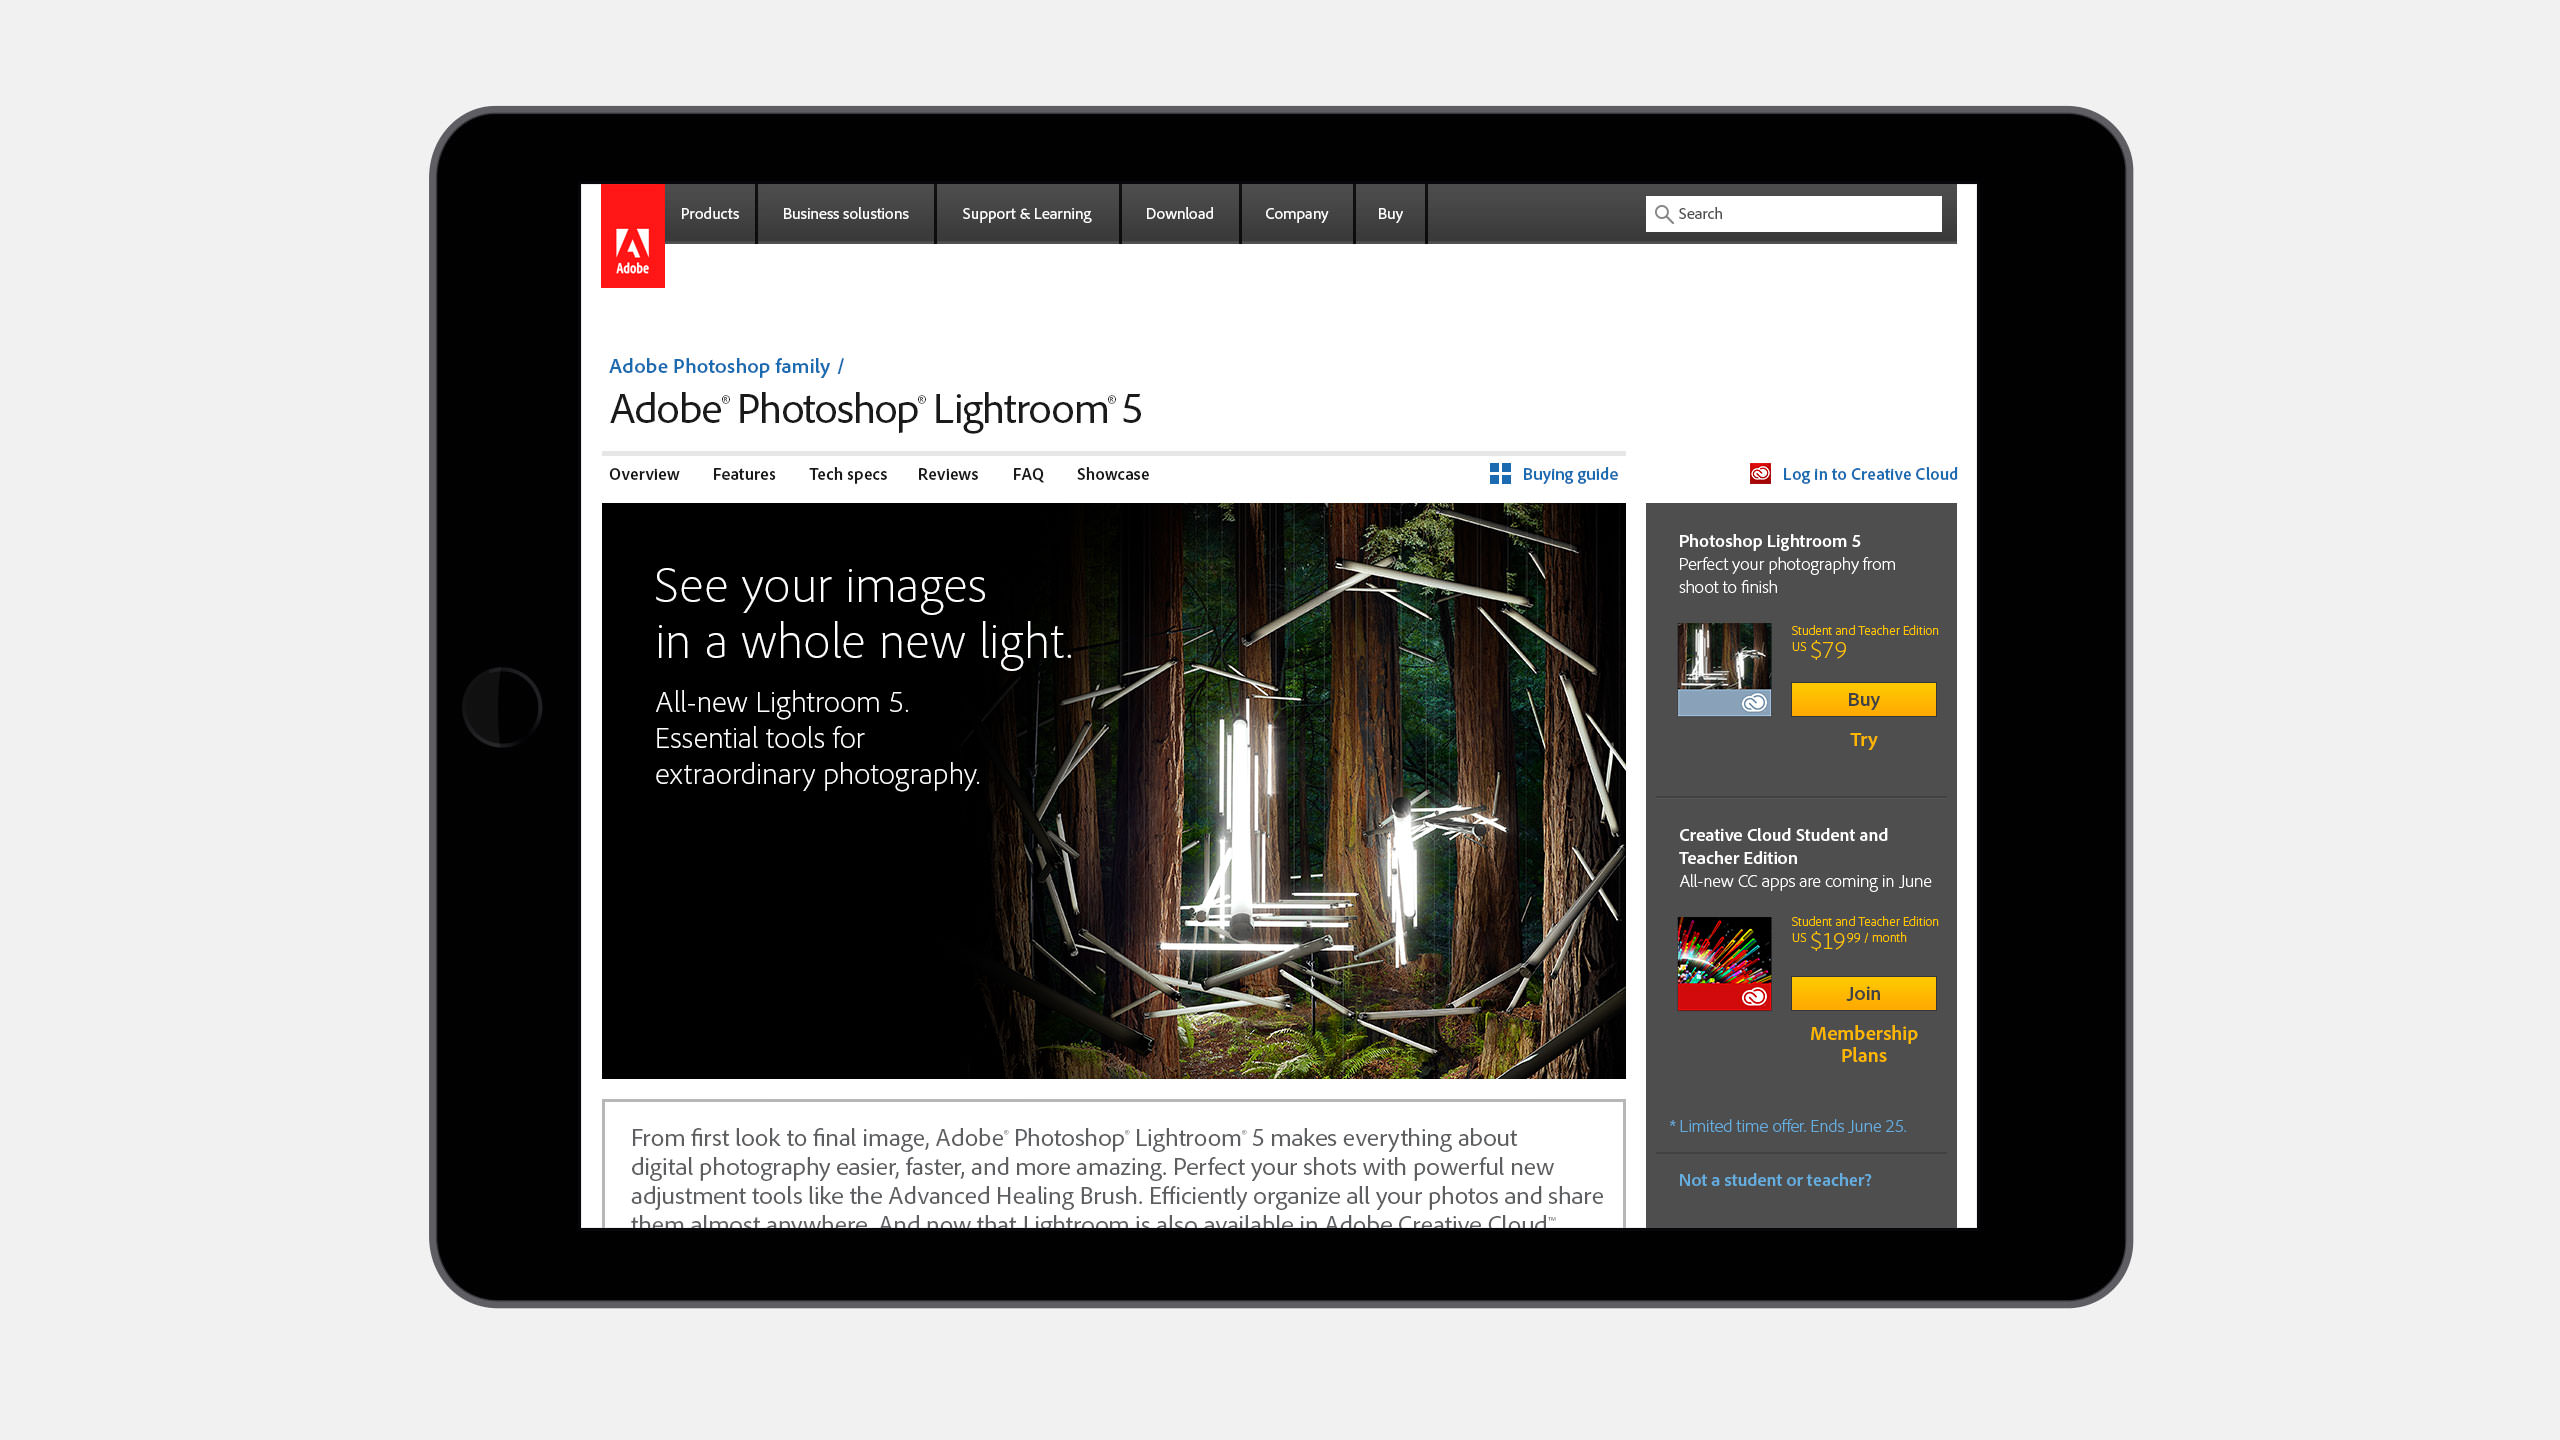 Adobe Lightroom Website Product Page on iPad